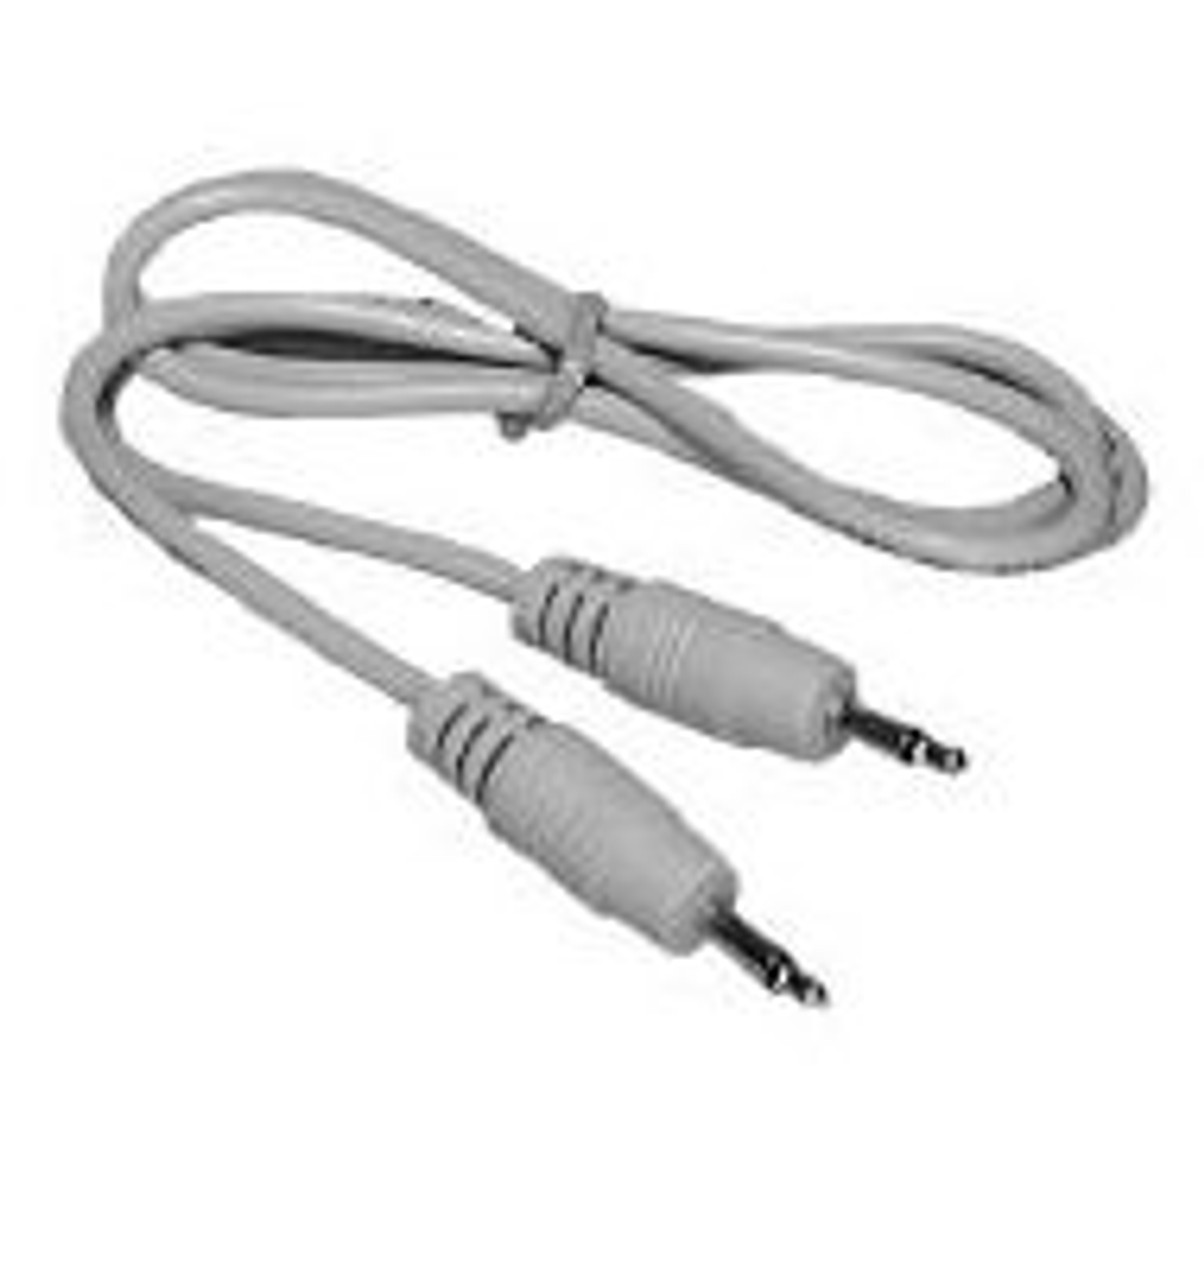 MediaStar 3.5mm Male to Male Mono Cable - 3 Feet